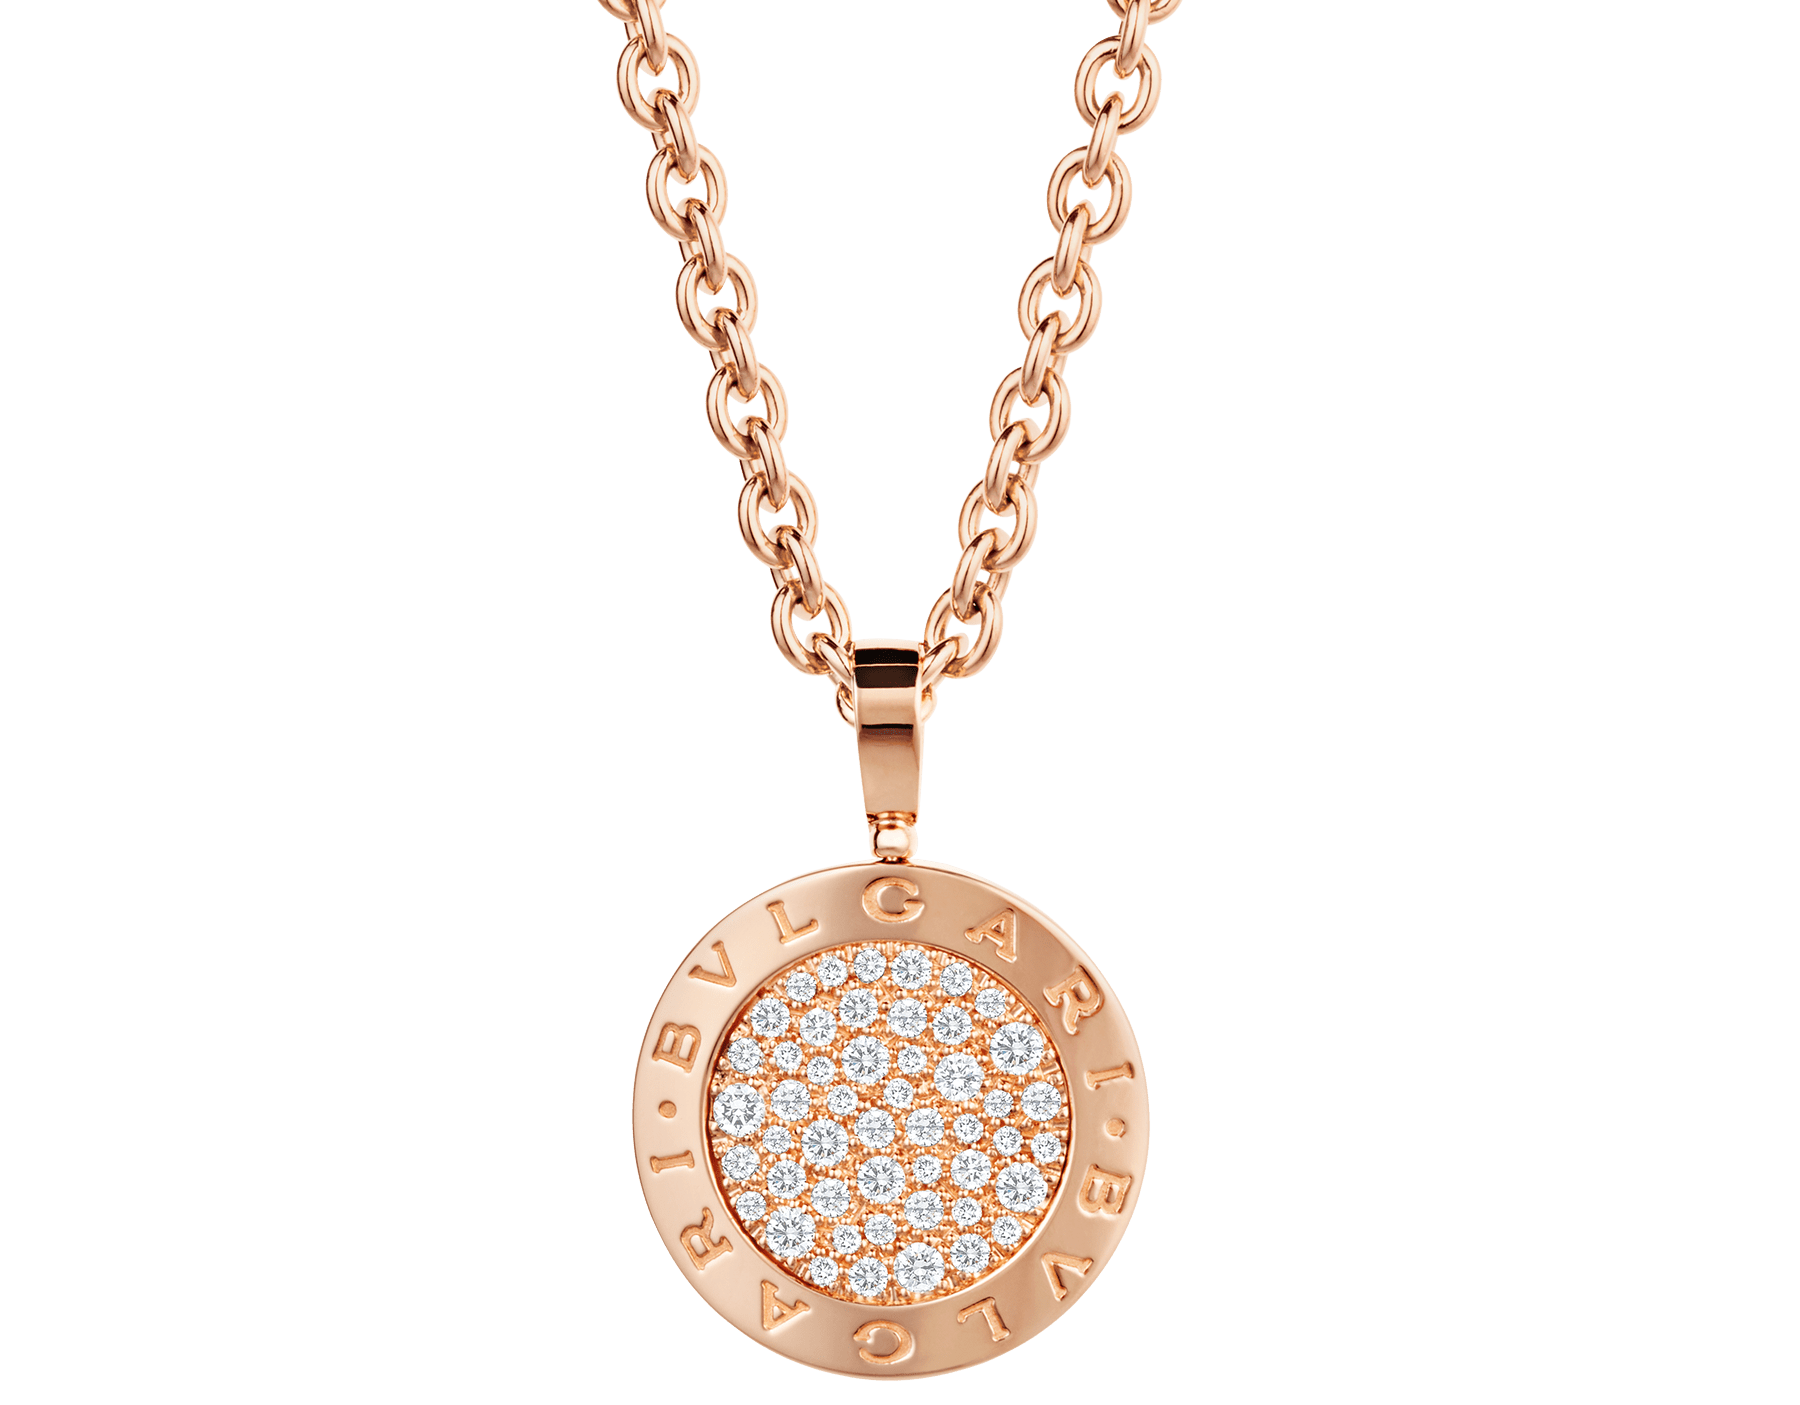 BVLGARI BVLGARI necklace with 18 kt rose gold chain and 18 kt rose gold pendant set with pavé diamonds 345277 image 1